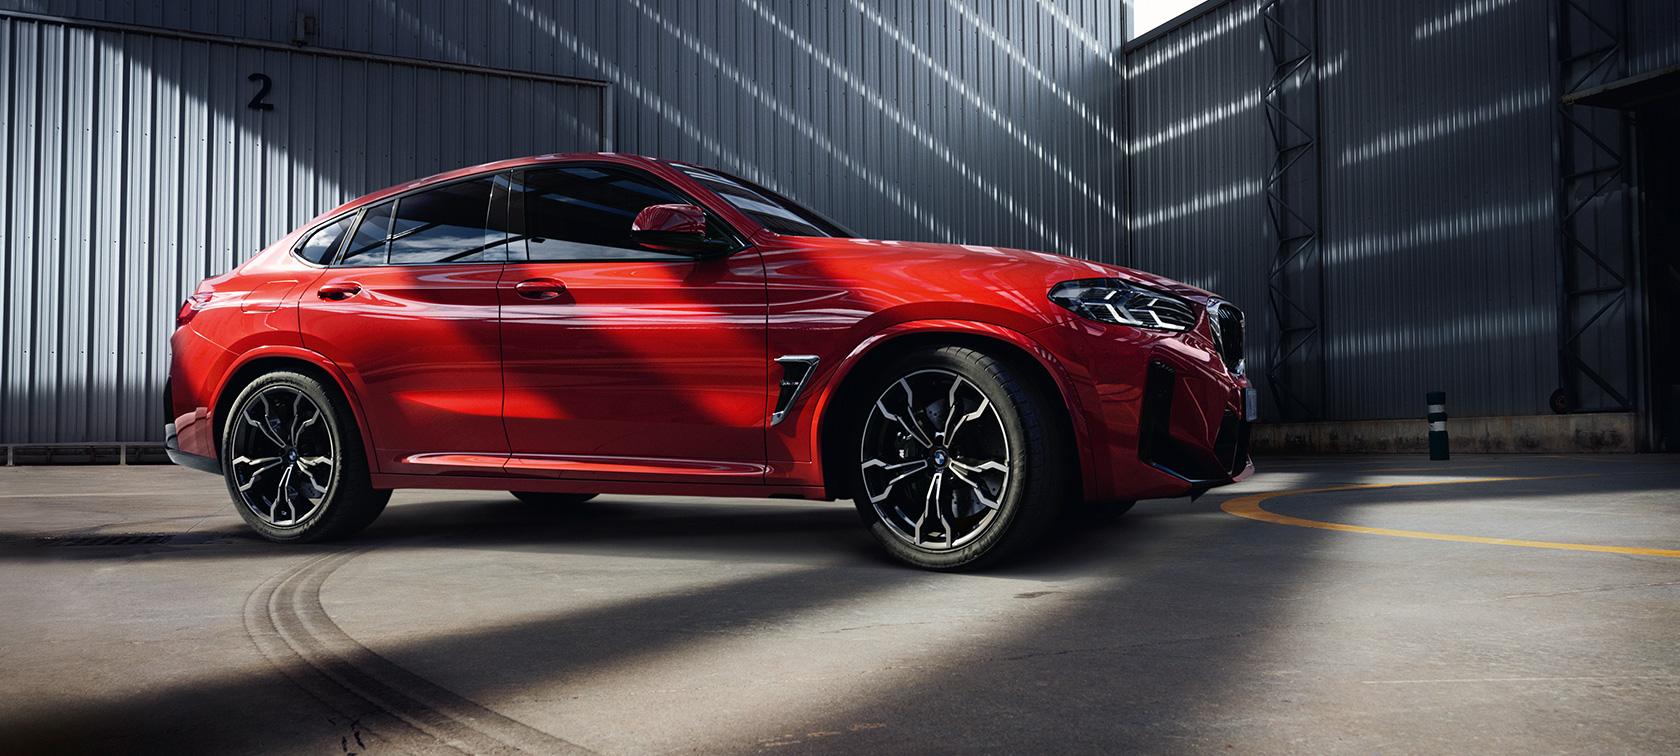 BMW X4 M Design Lateral